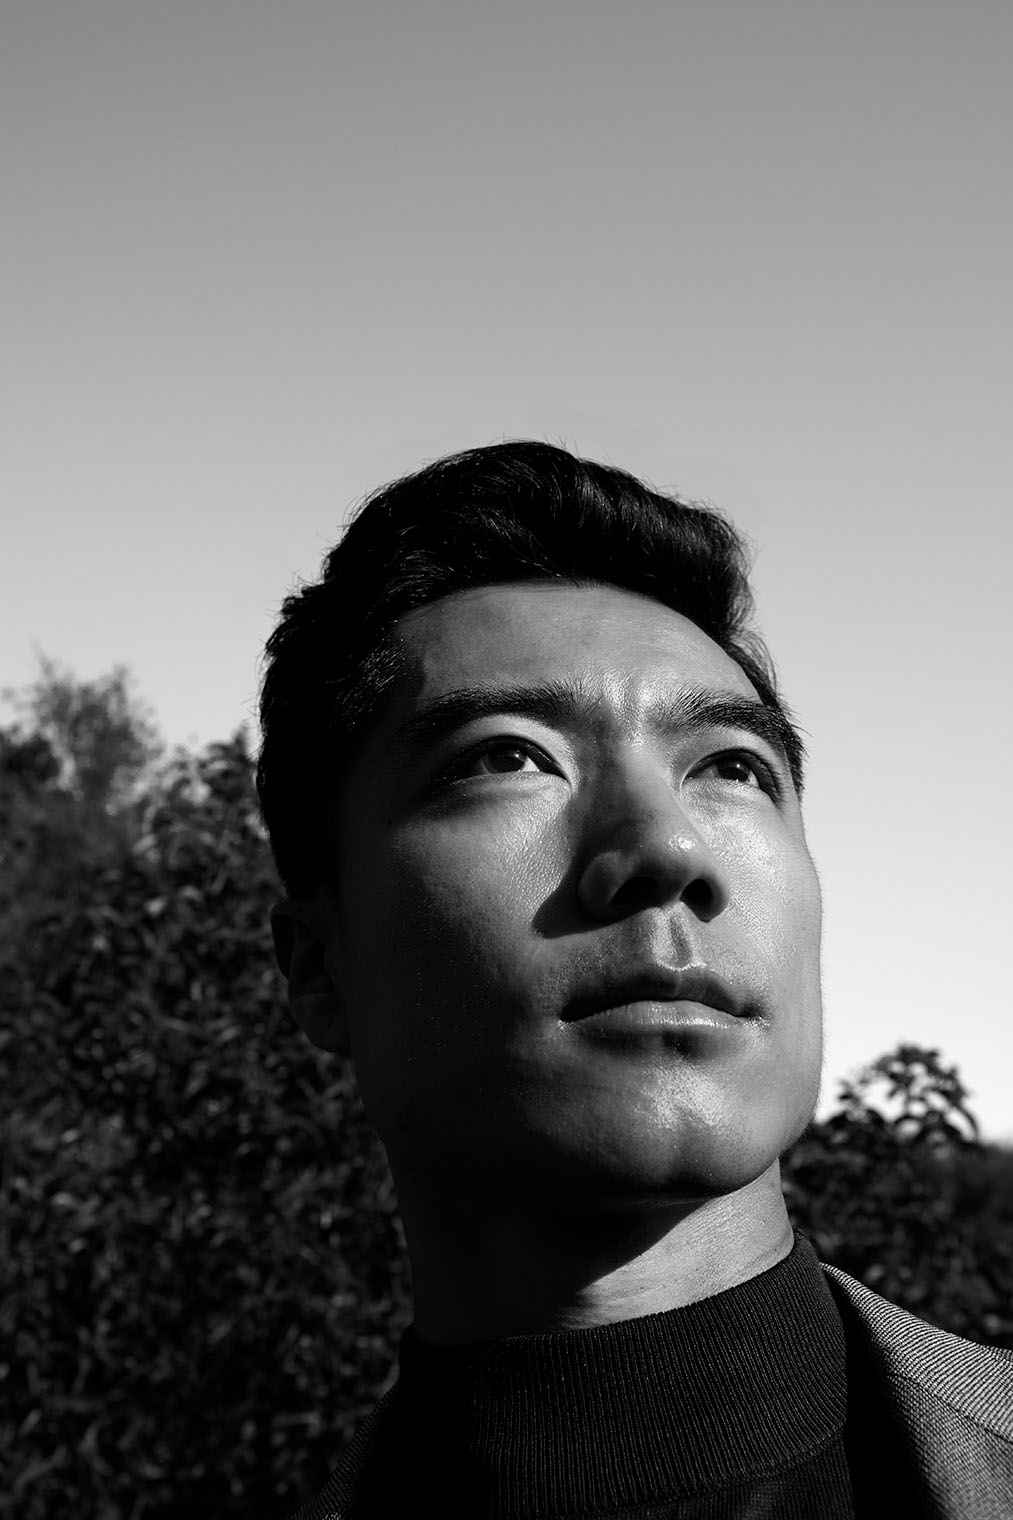 fashion portrait of Asian man in a coat in nature at a male fashion and accessories shoot in nature in Los Angeles, California